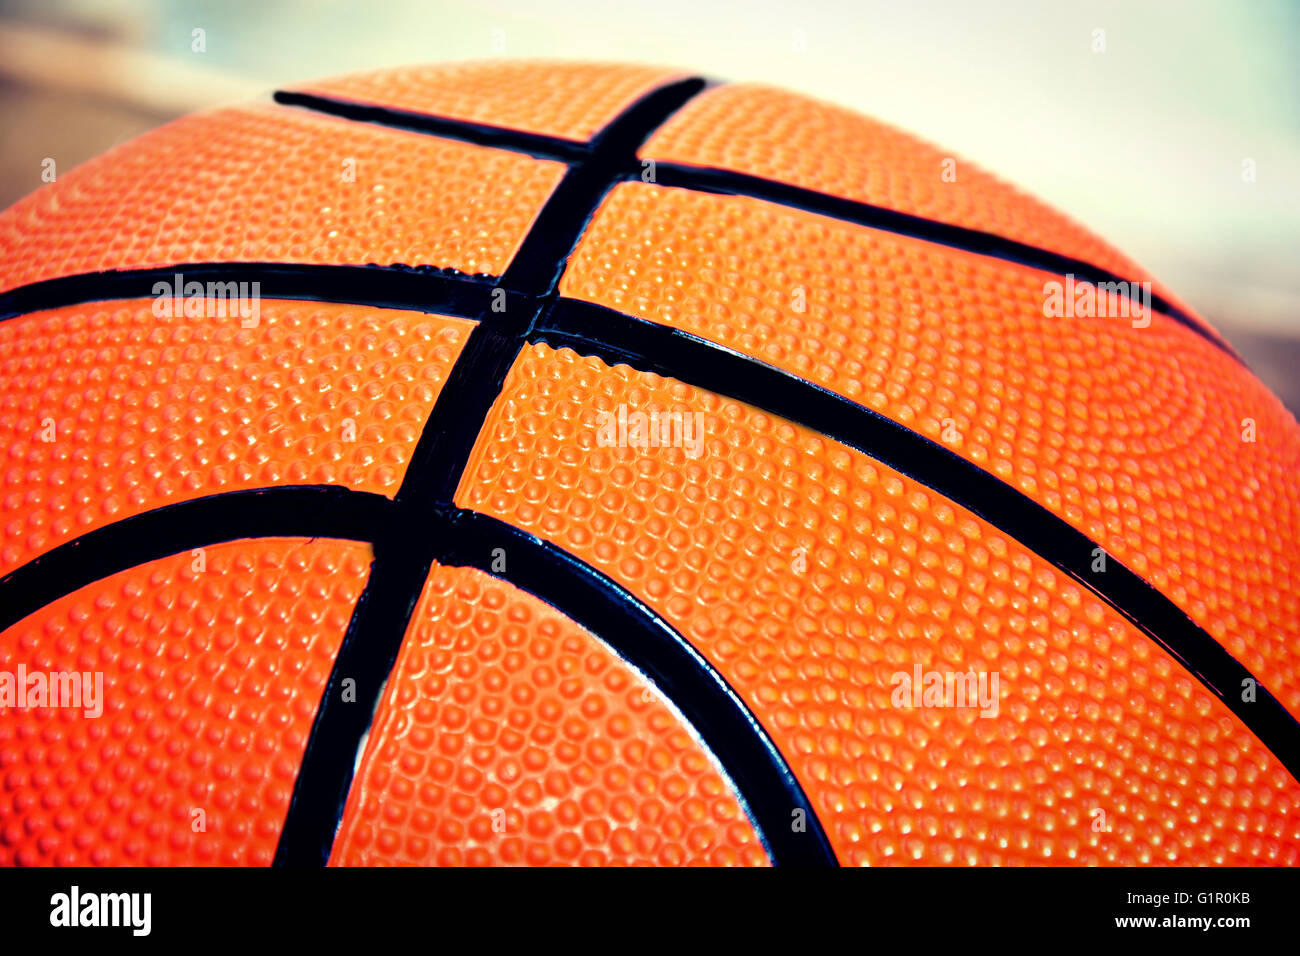 Match de basket-ball. Basket-ball ball close up photo. Photo Stock